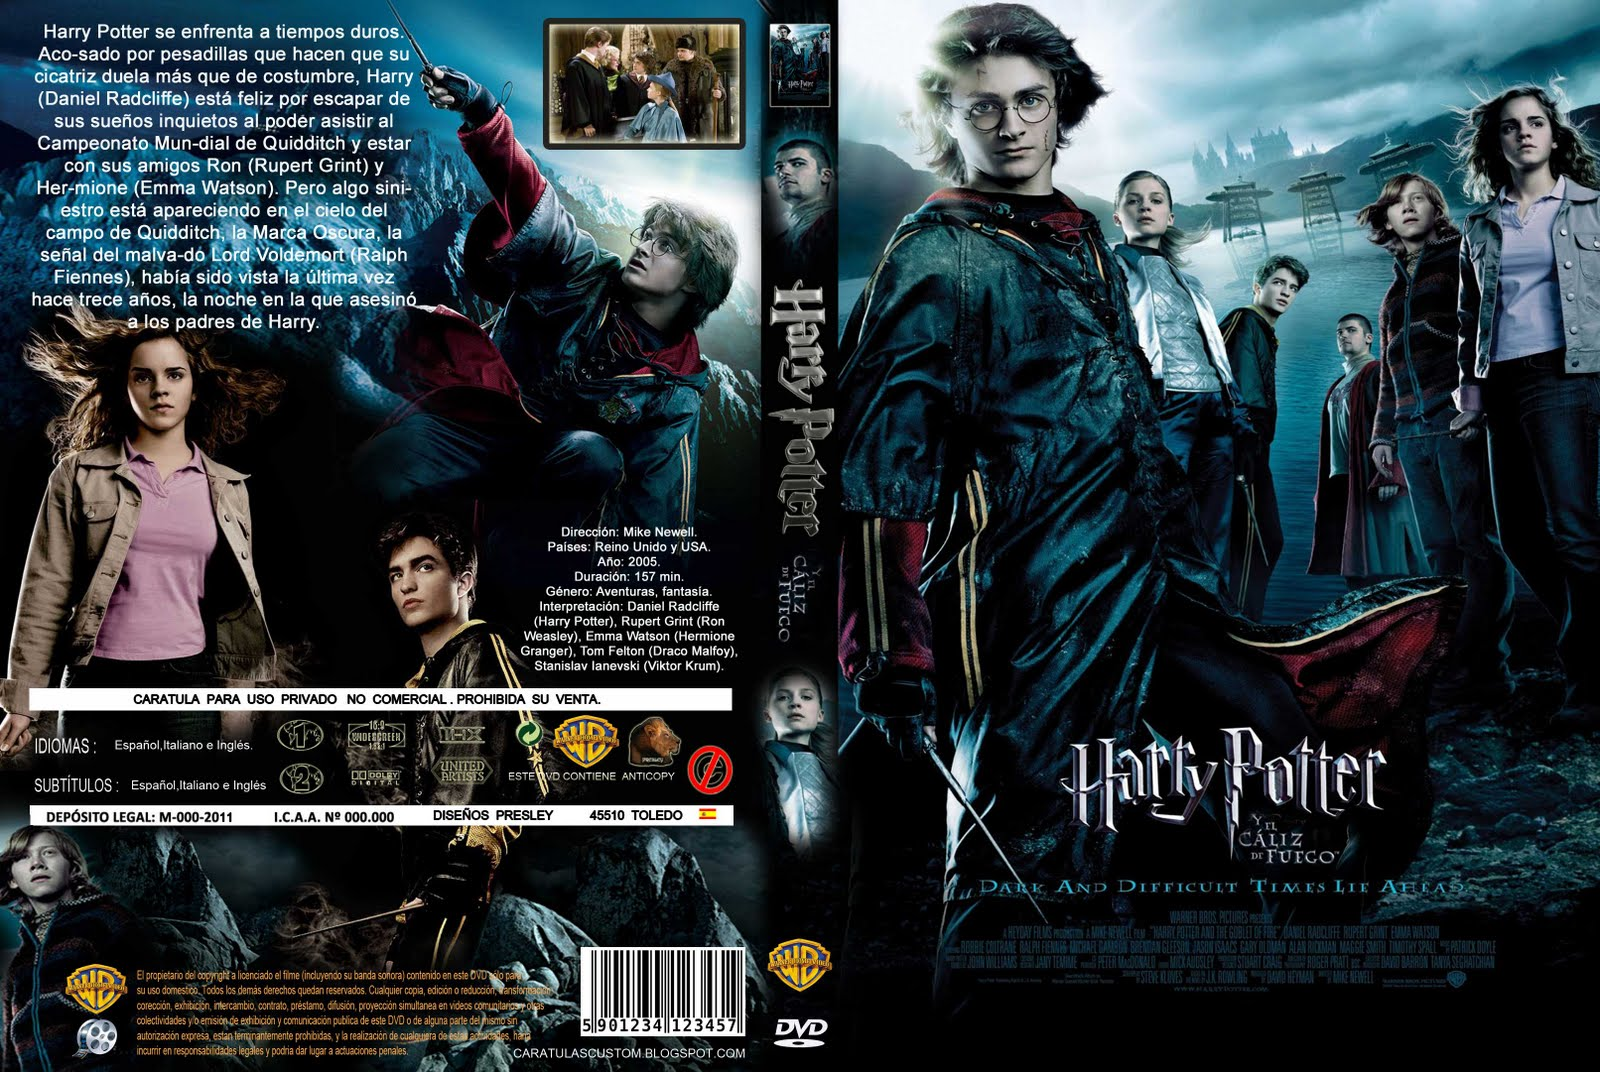 harry-potter-y-el-caliz-de-fuego-dvd.jpg